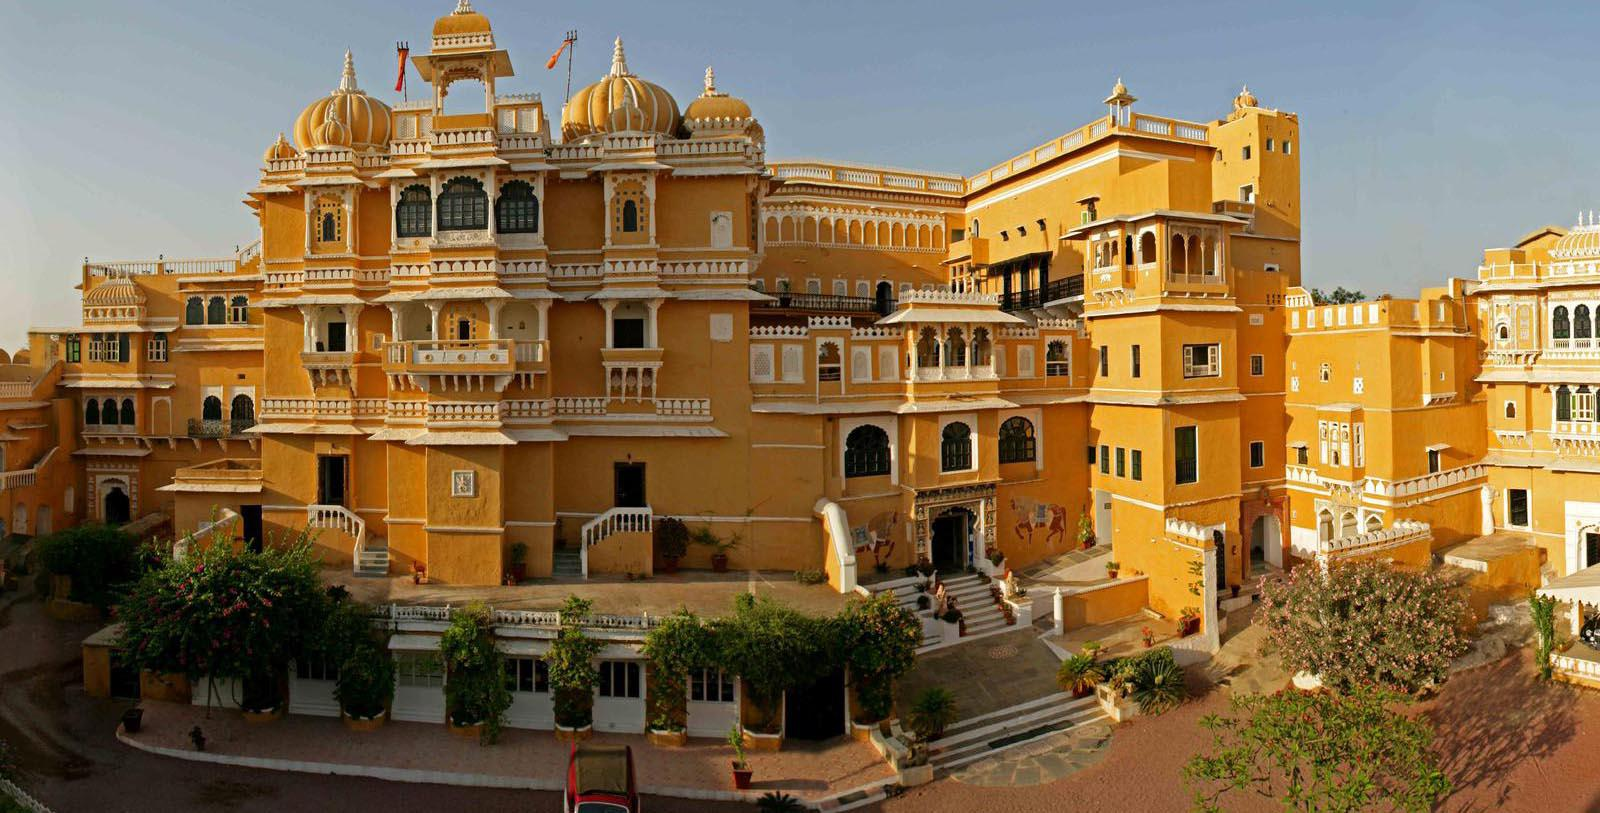 Image of hotel exterior Deogarh Mahal, 1670, Member of Historic Hotels Worldwide, in Deogarh, India, Overview